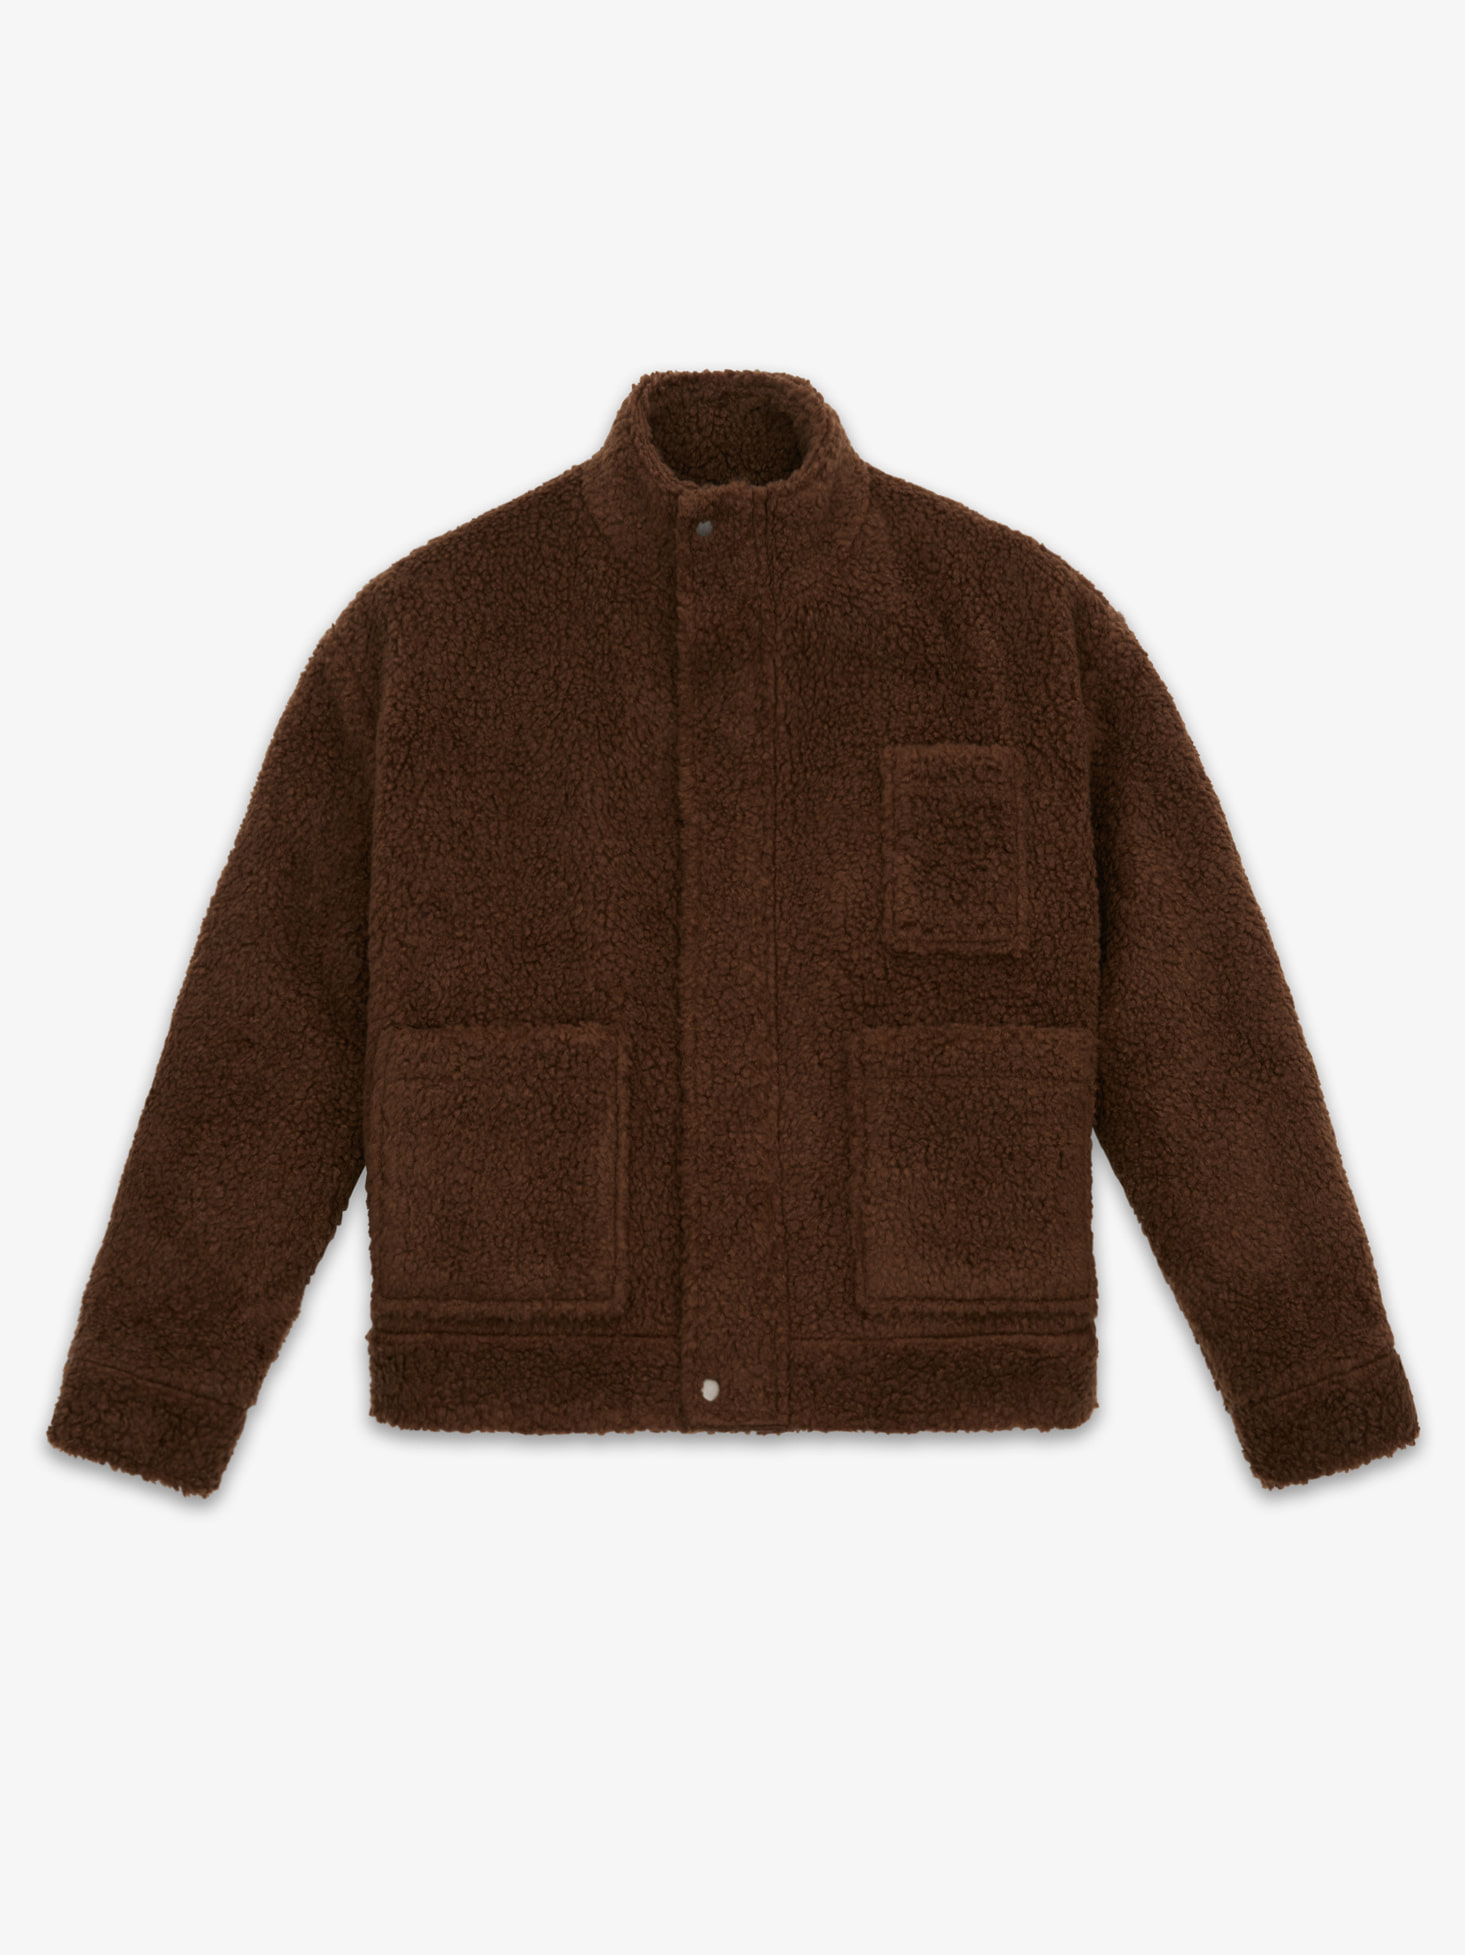 LAMBS WOOL MOBILE JACKET(BROWN) 시즌오프 60% 특별할인 248,000원 ->